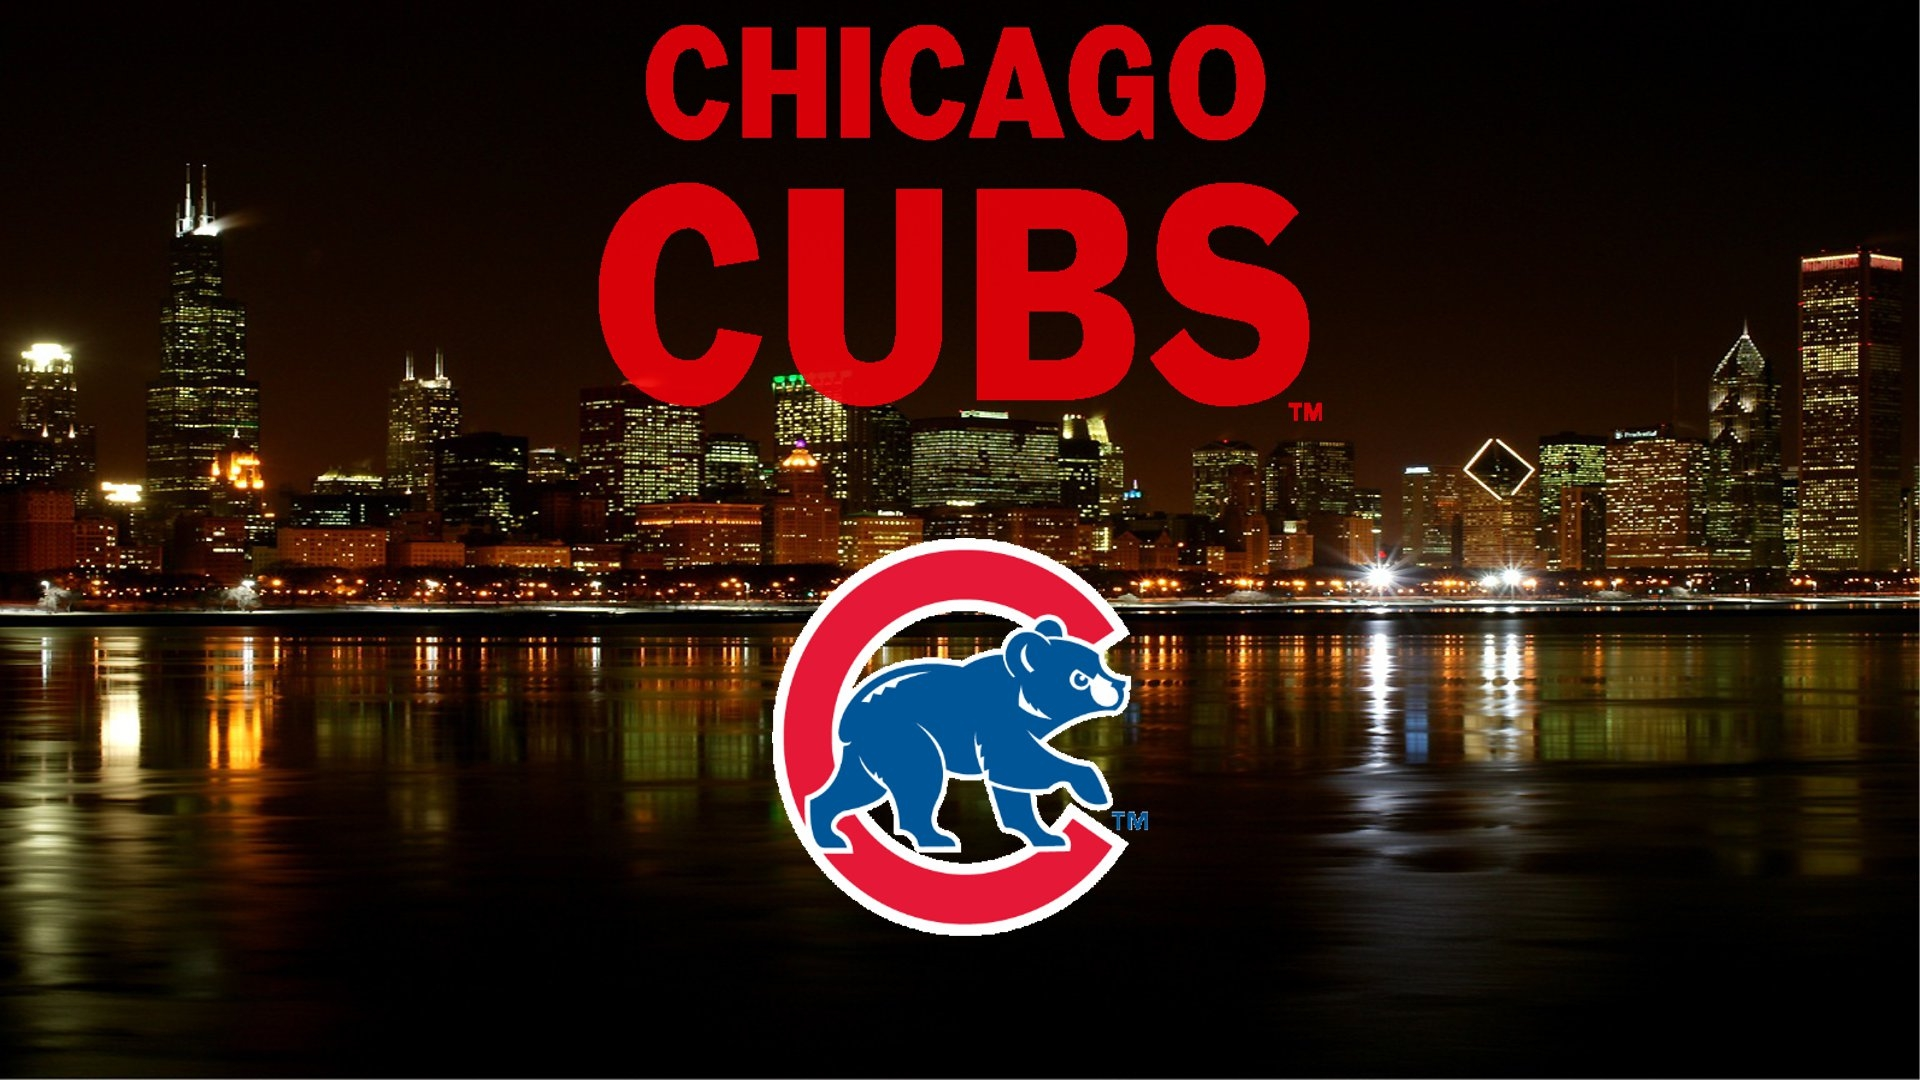 Chicago Cubs wallpaper   935902 1920x1080